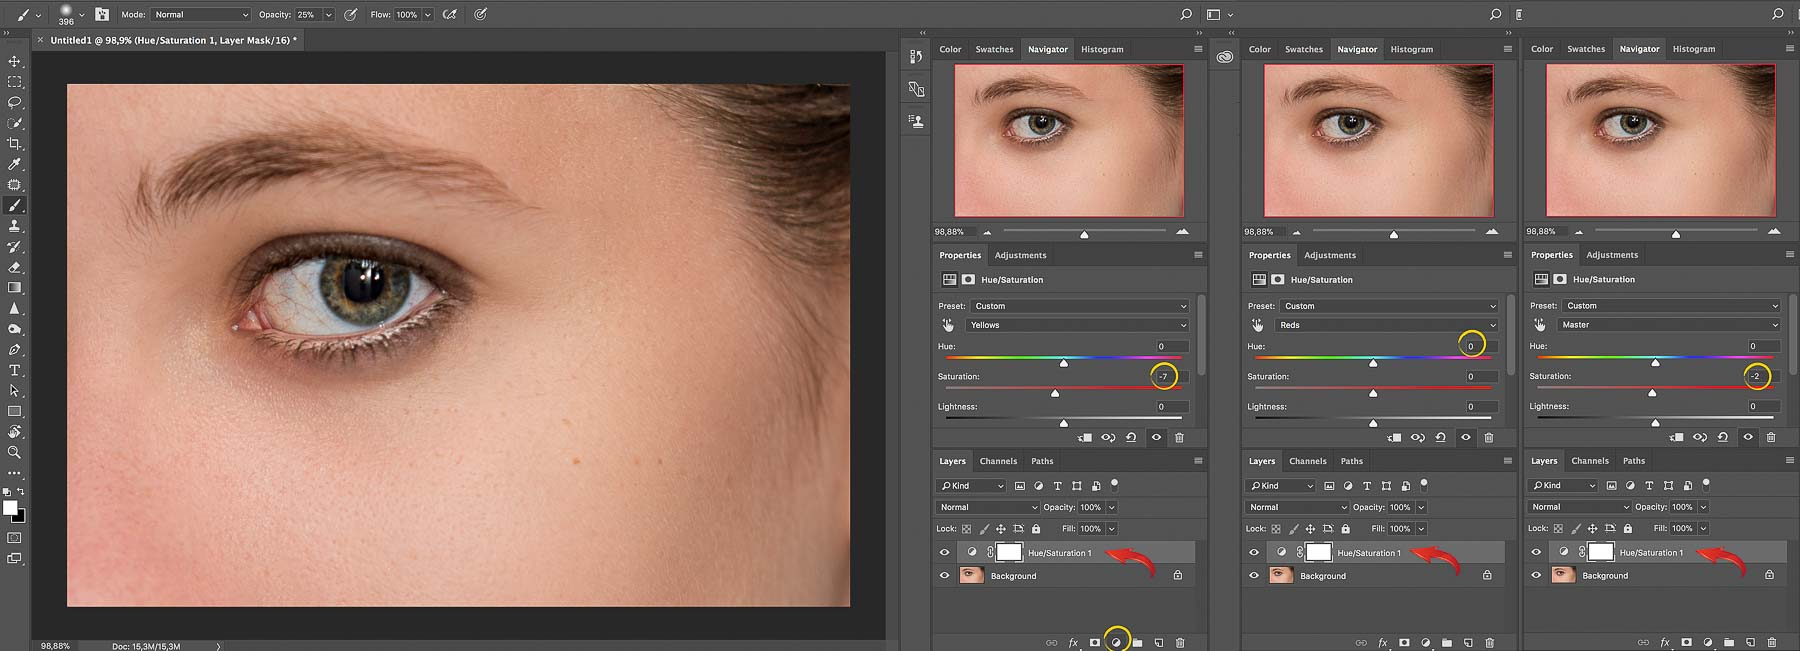 Hue Sasturation | Final Touches | Photoshop Skin Retouching • Portrait Retouching Workflow